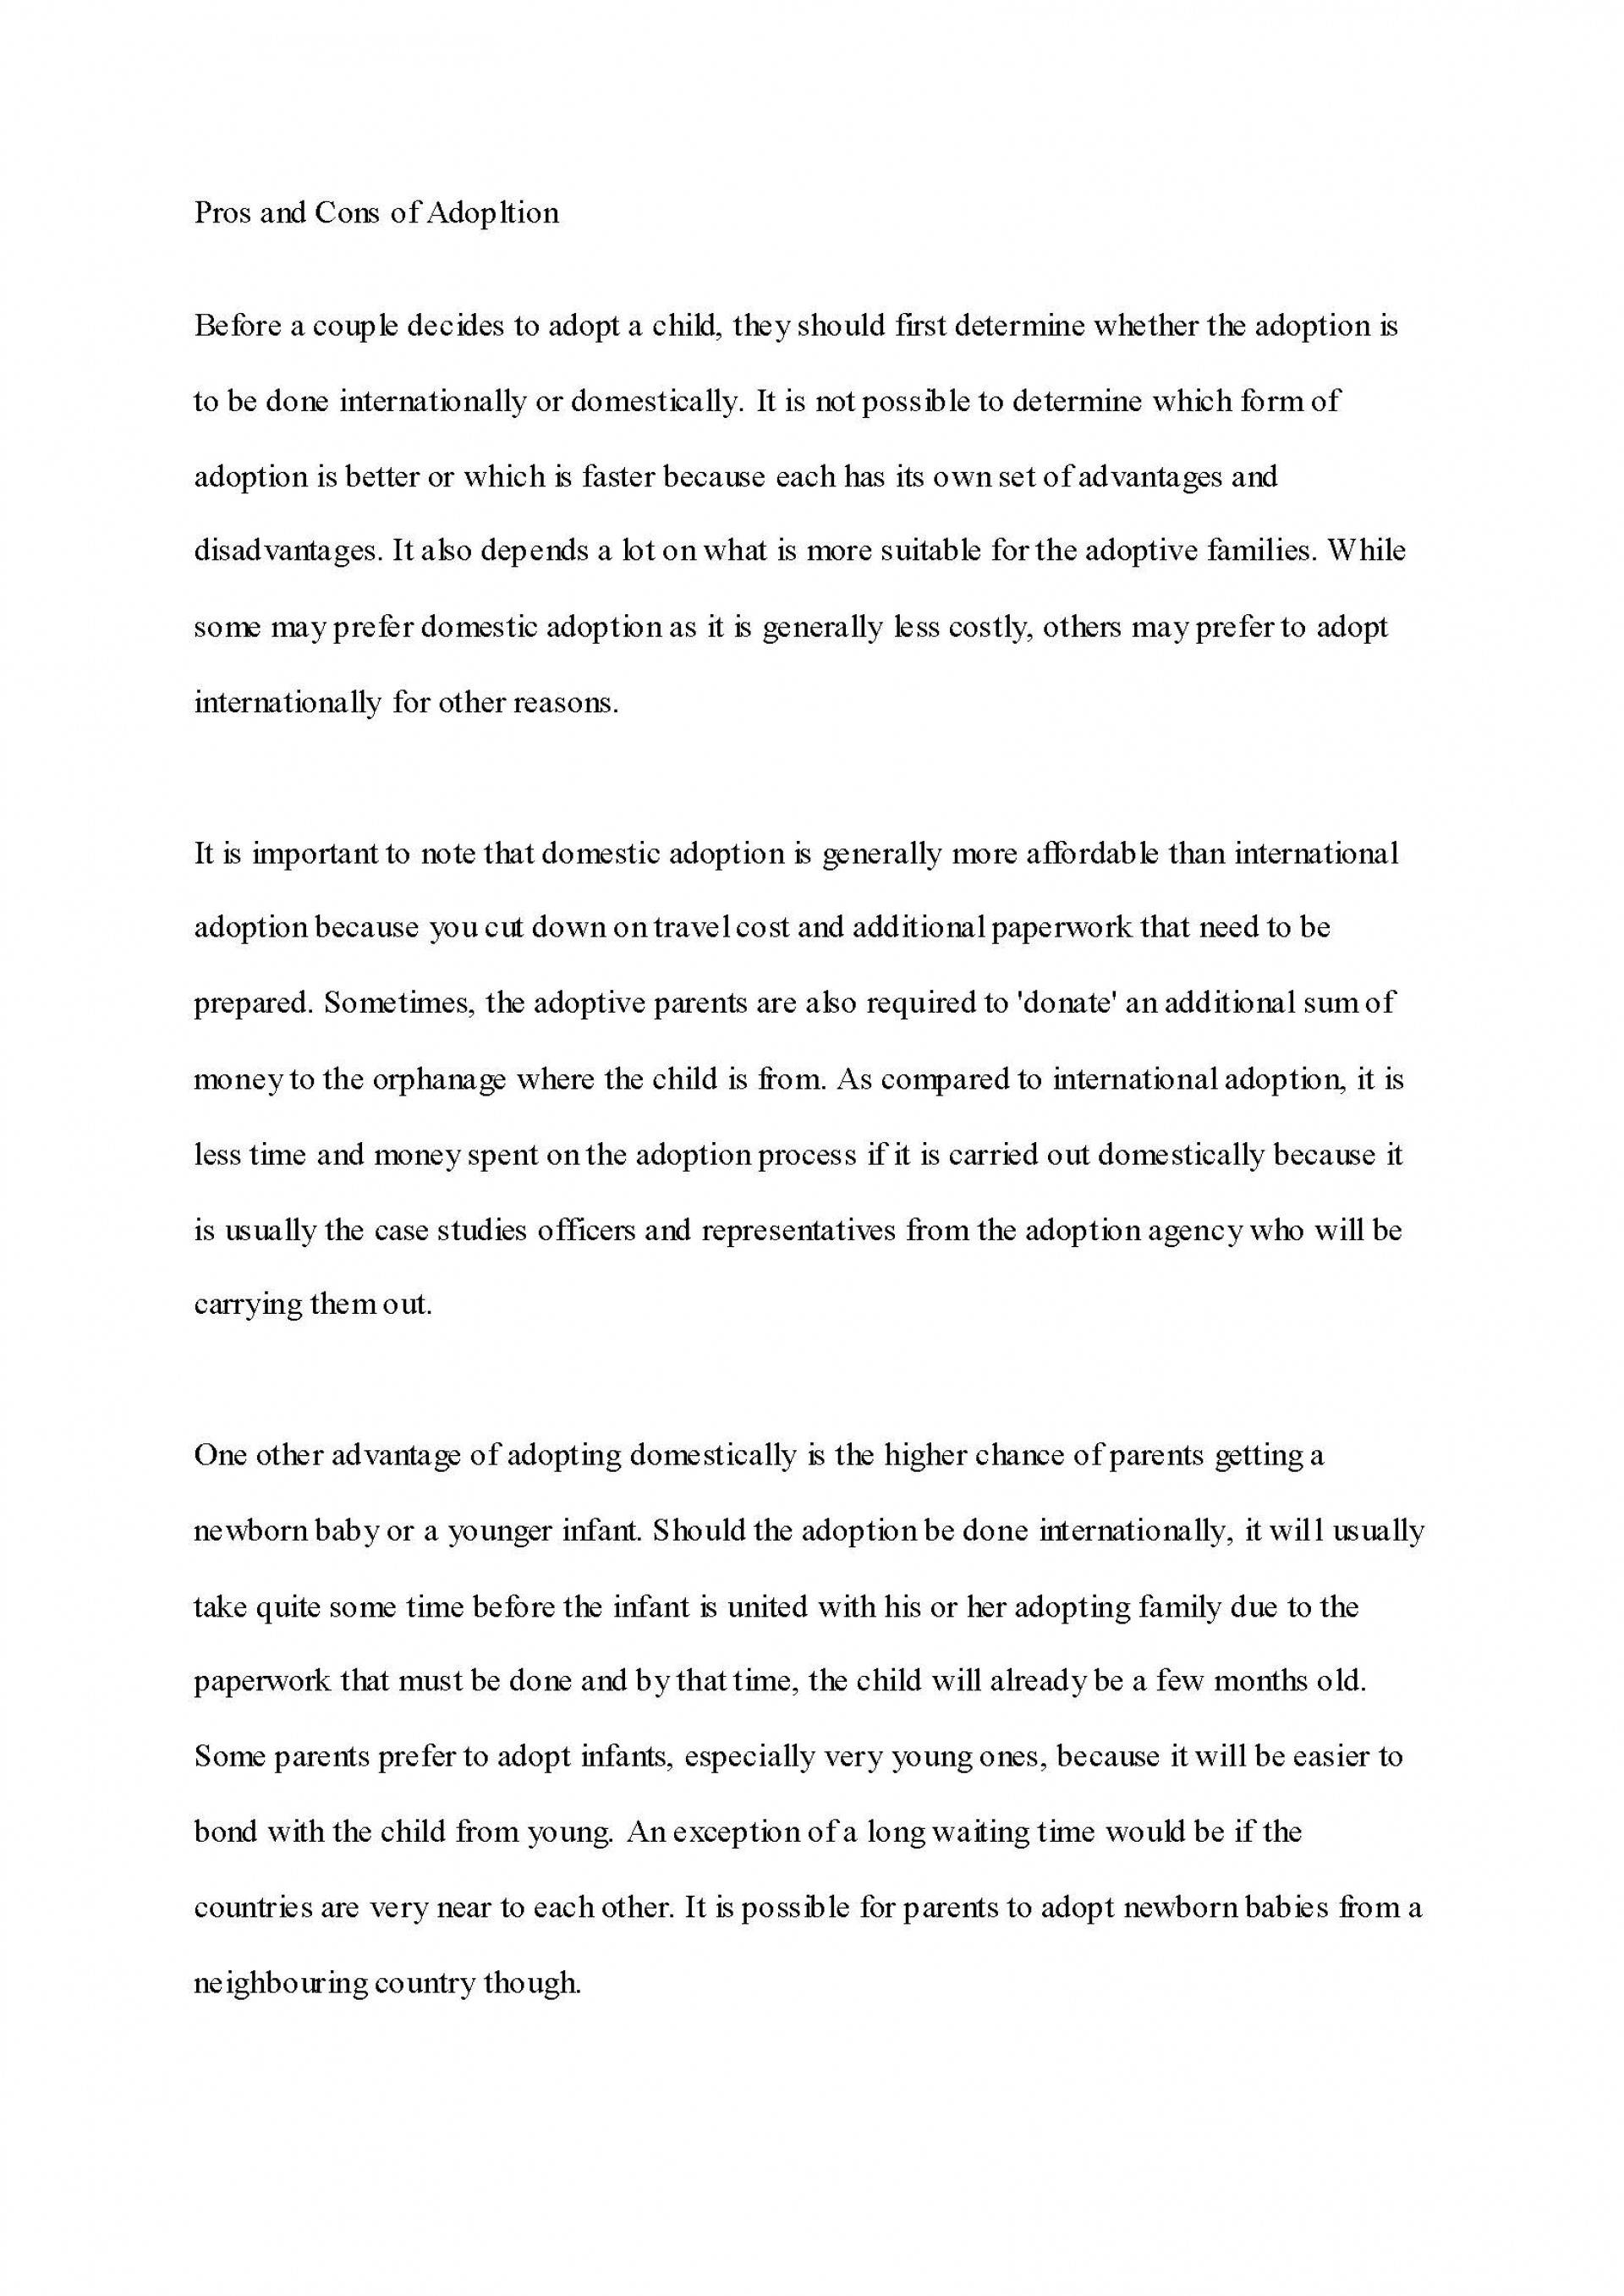 021 Adoption Essay Sample Example Help With Surprising My Me Introduction Sound Better Research Paper For Free 1920